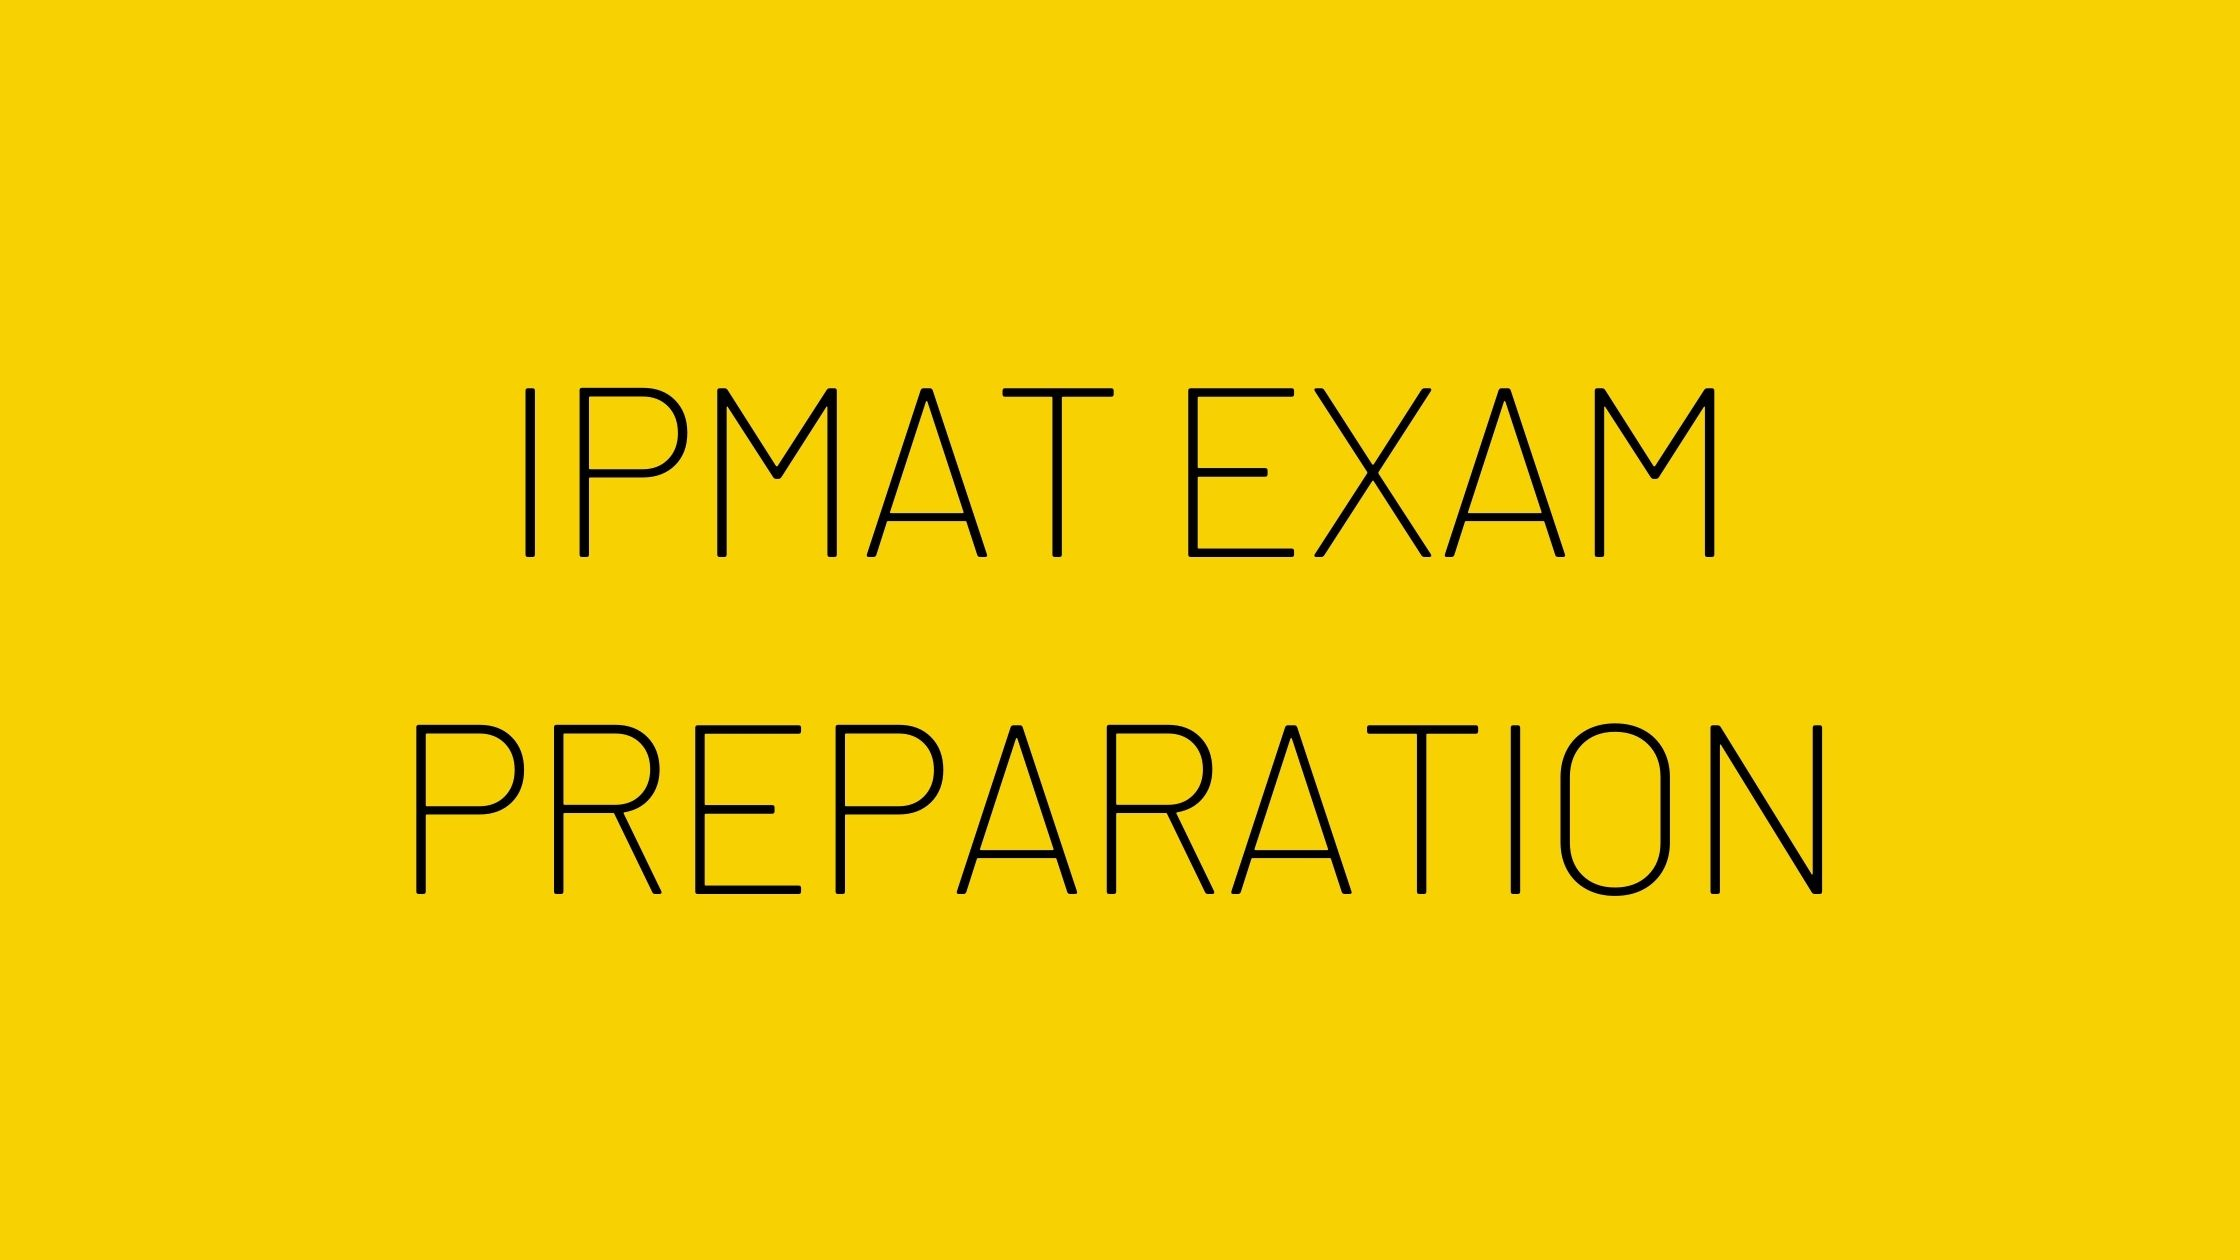 Best IPMAT Exam Preparation Tips 2021: Study Plan, Tips